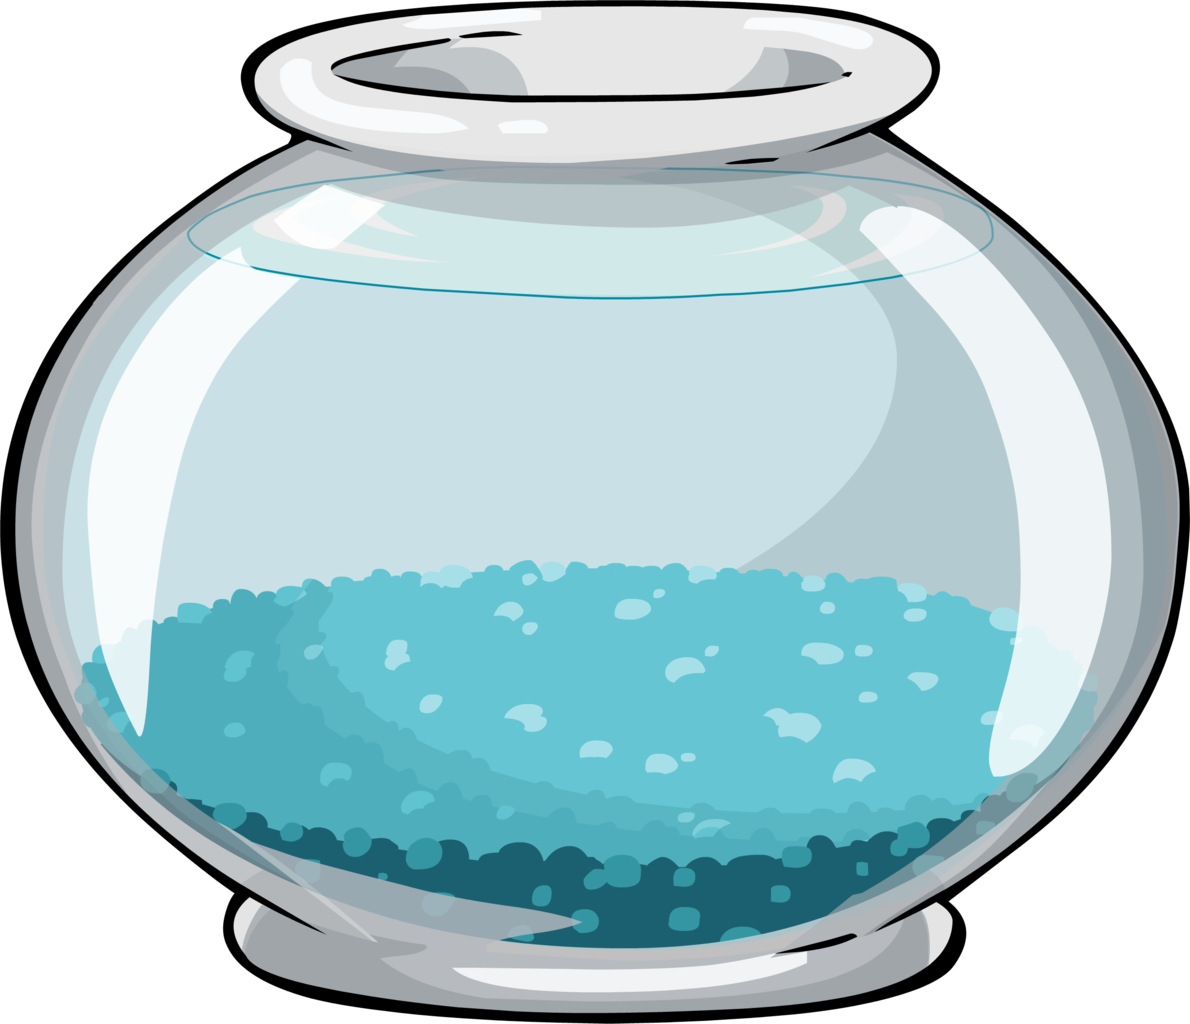 Image png club penguin. Fishbowl clipart fishing